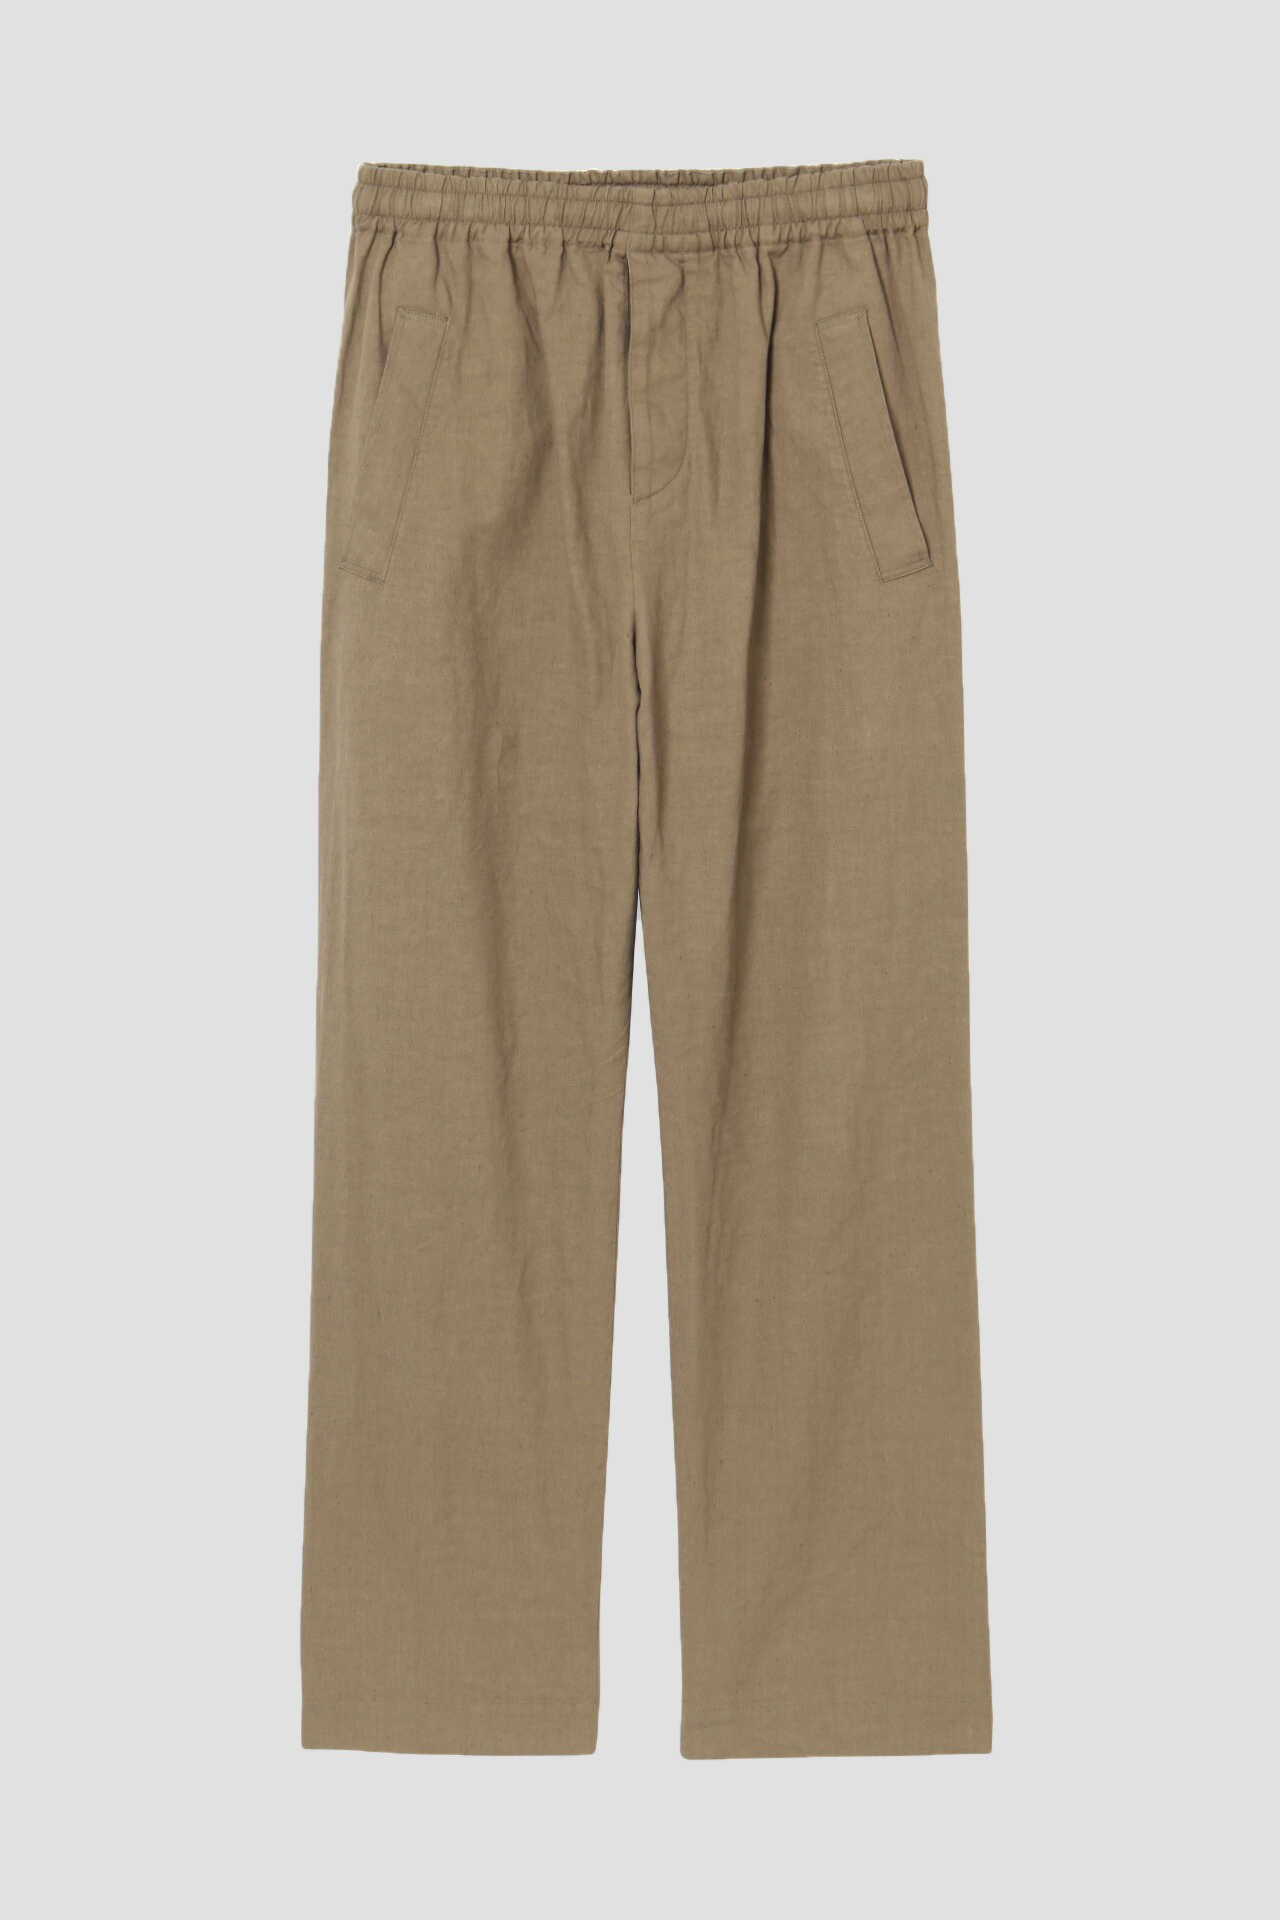 LINEN COTTON TWILL8